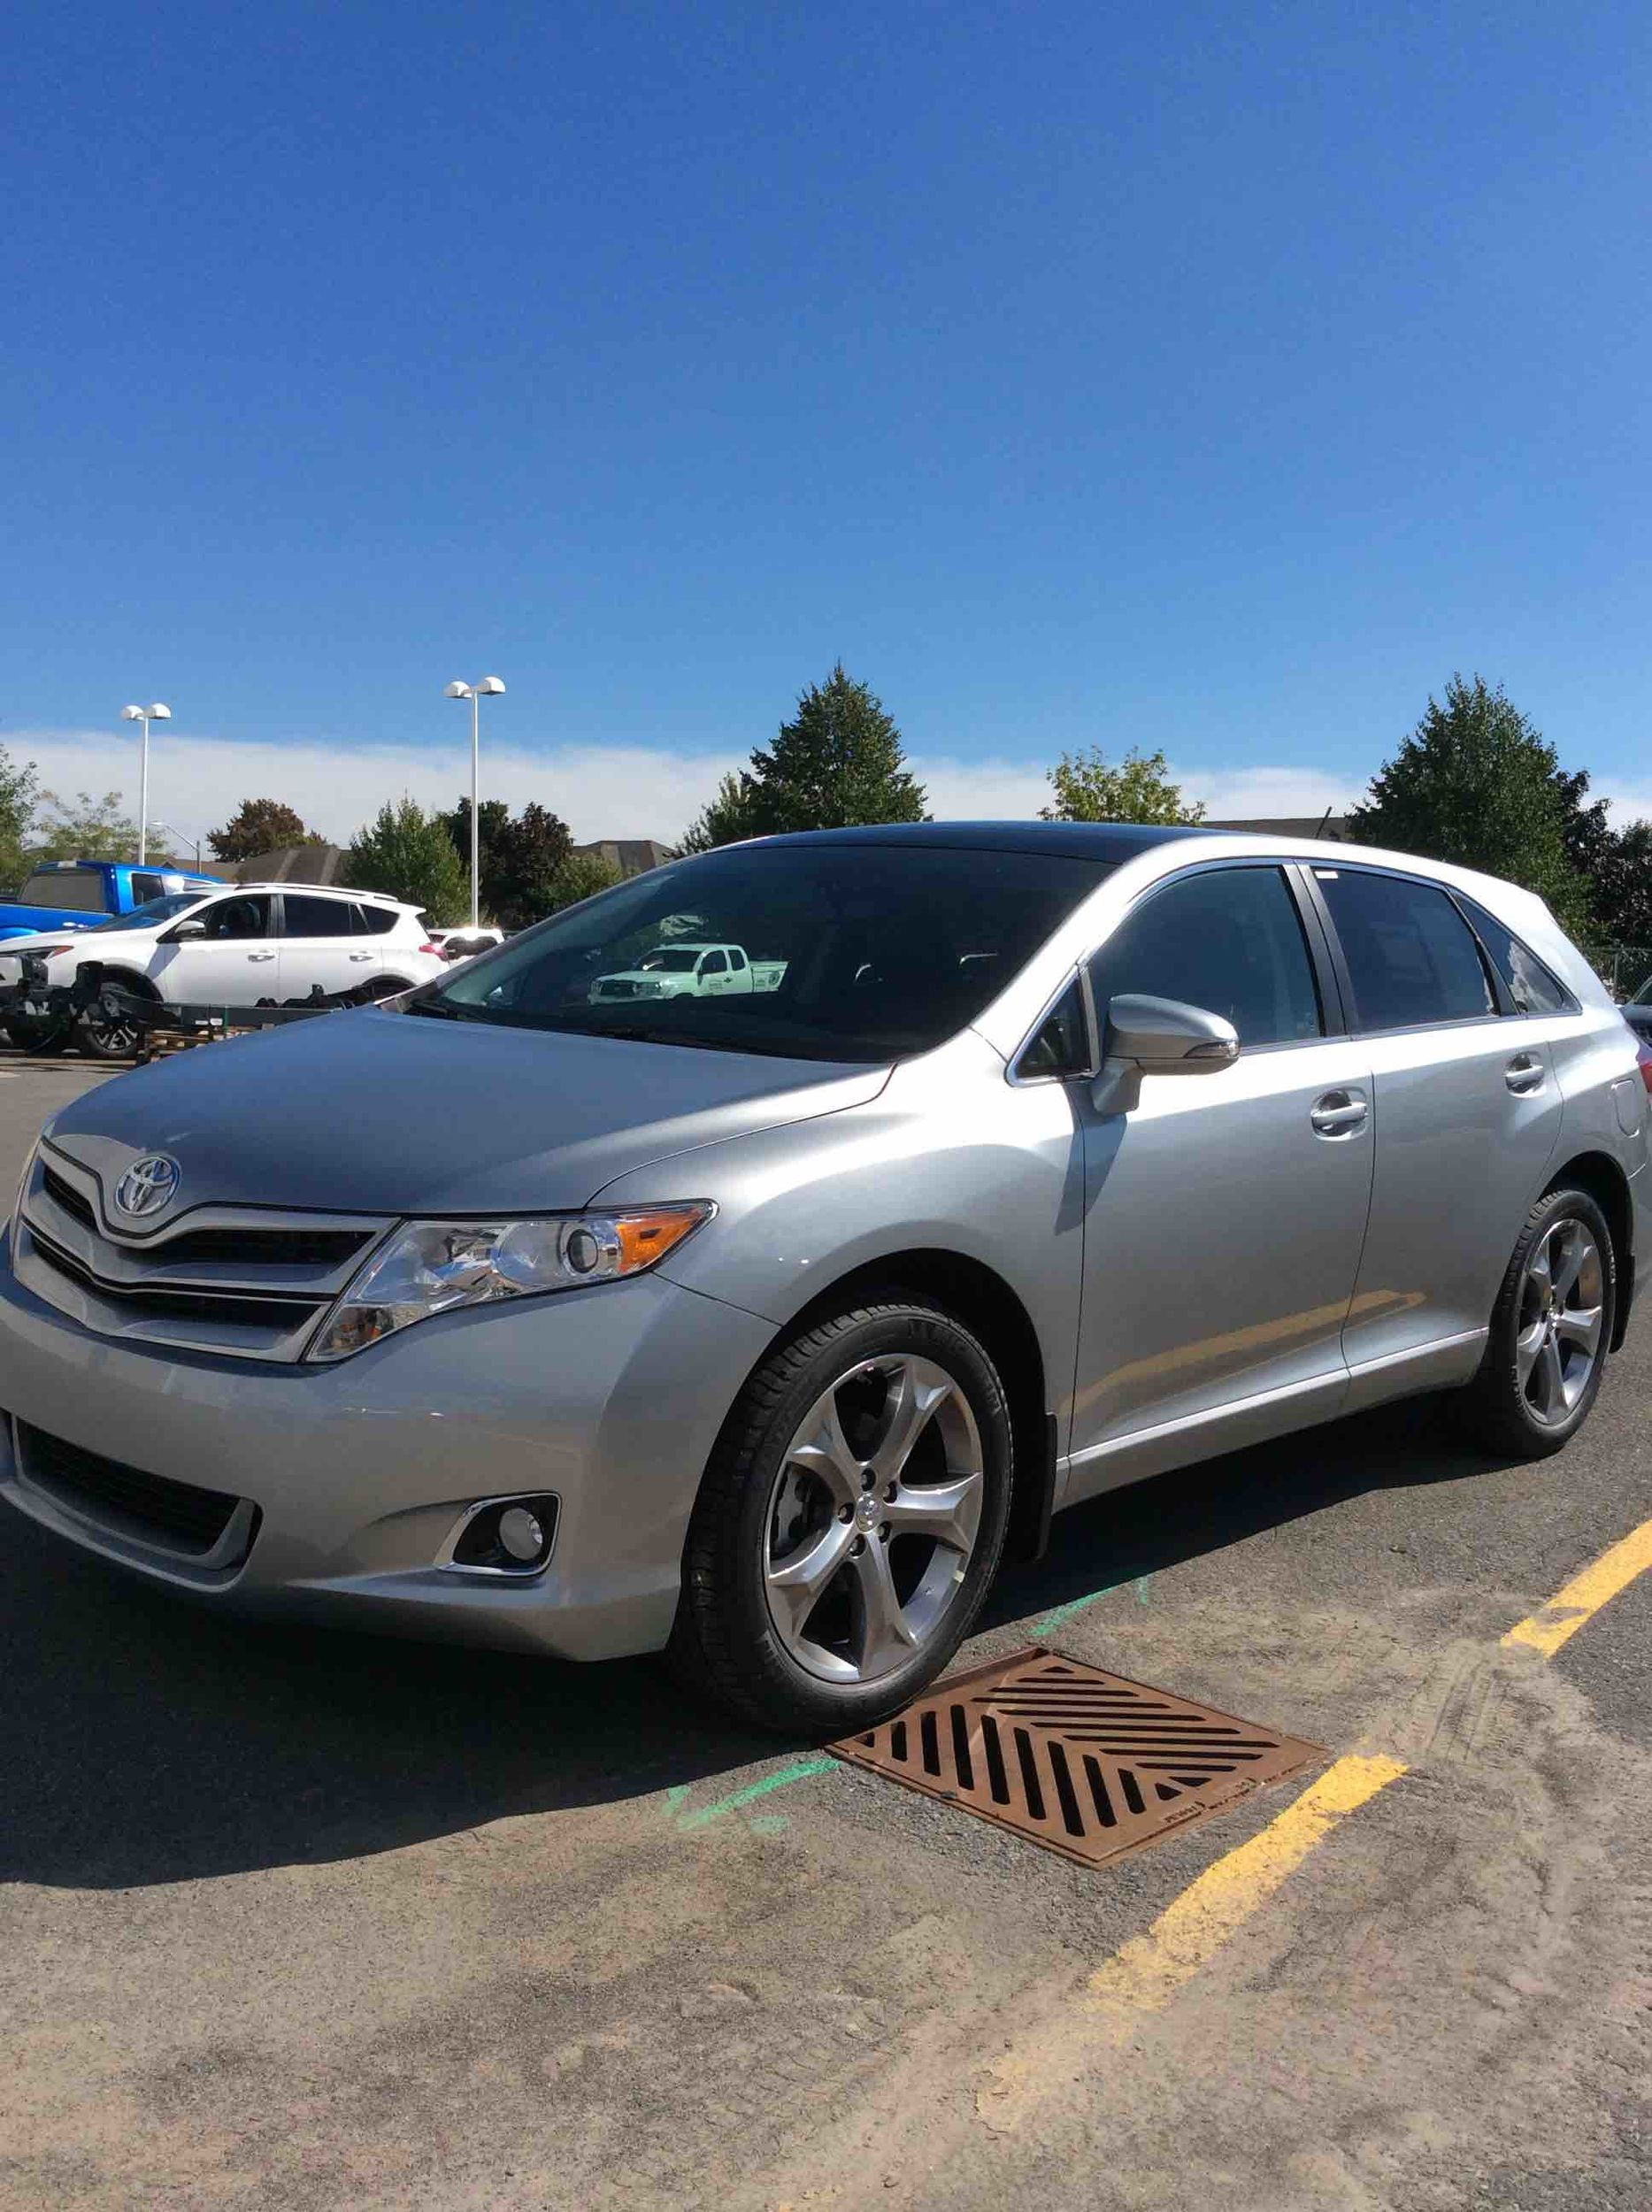 toyota pearl fwd large venza crossover groovecar research composite blizzard awd